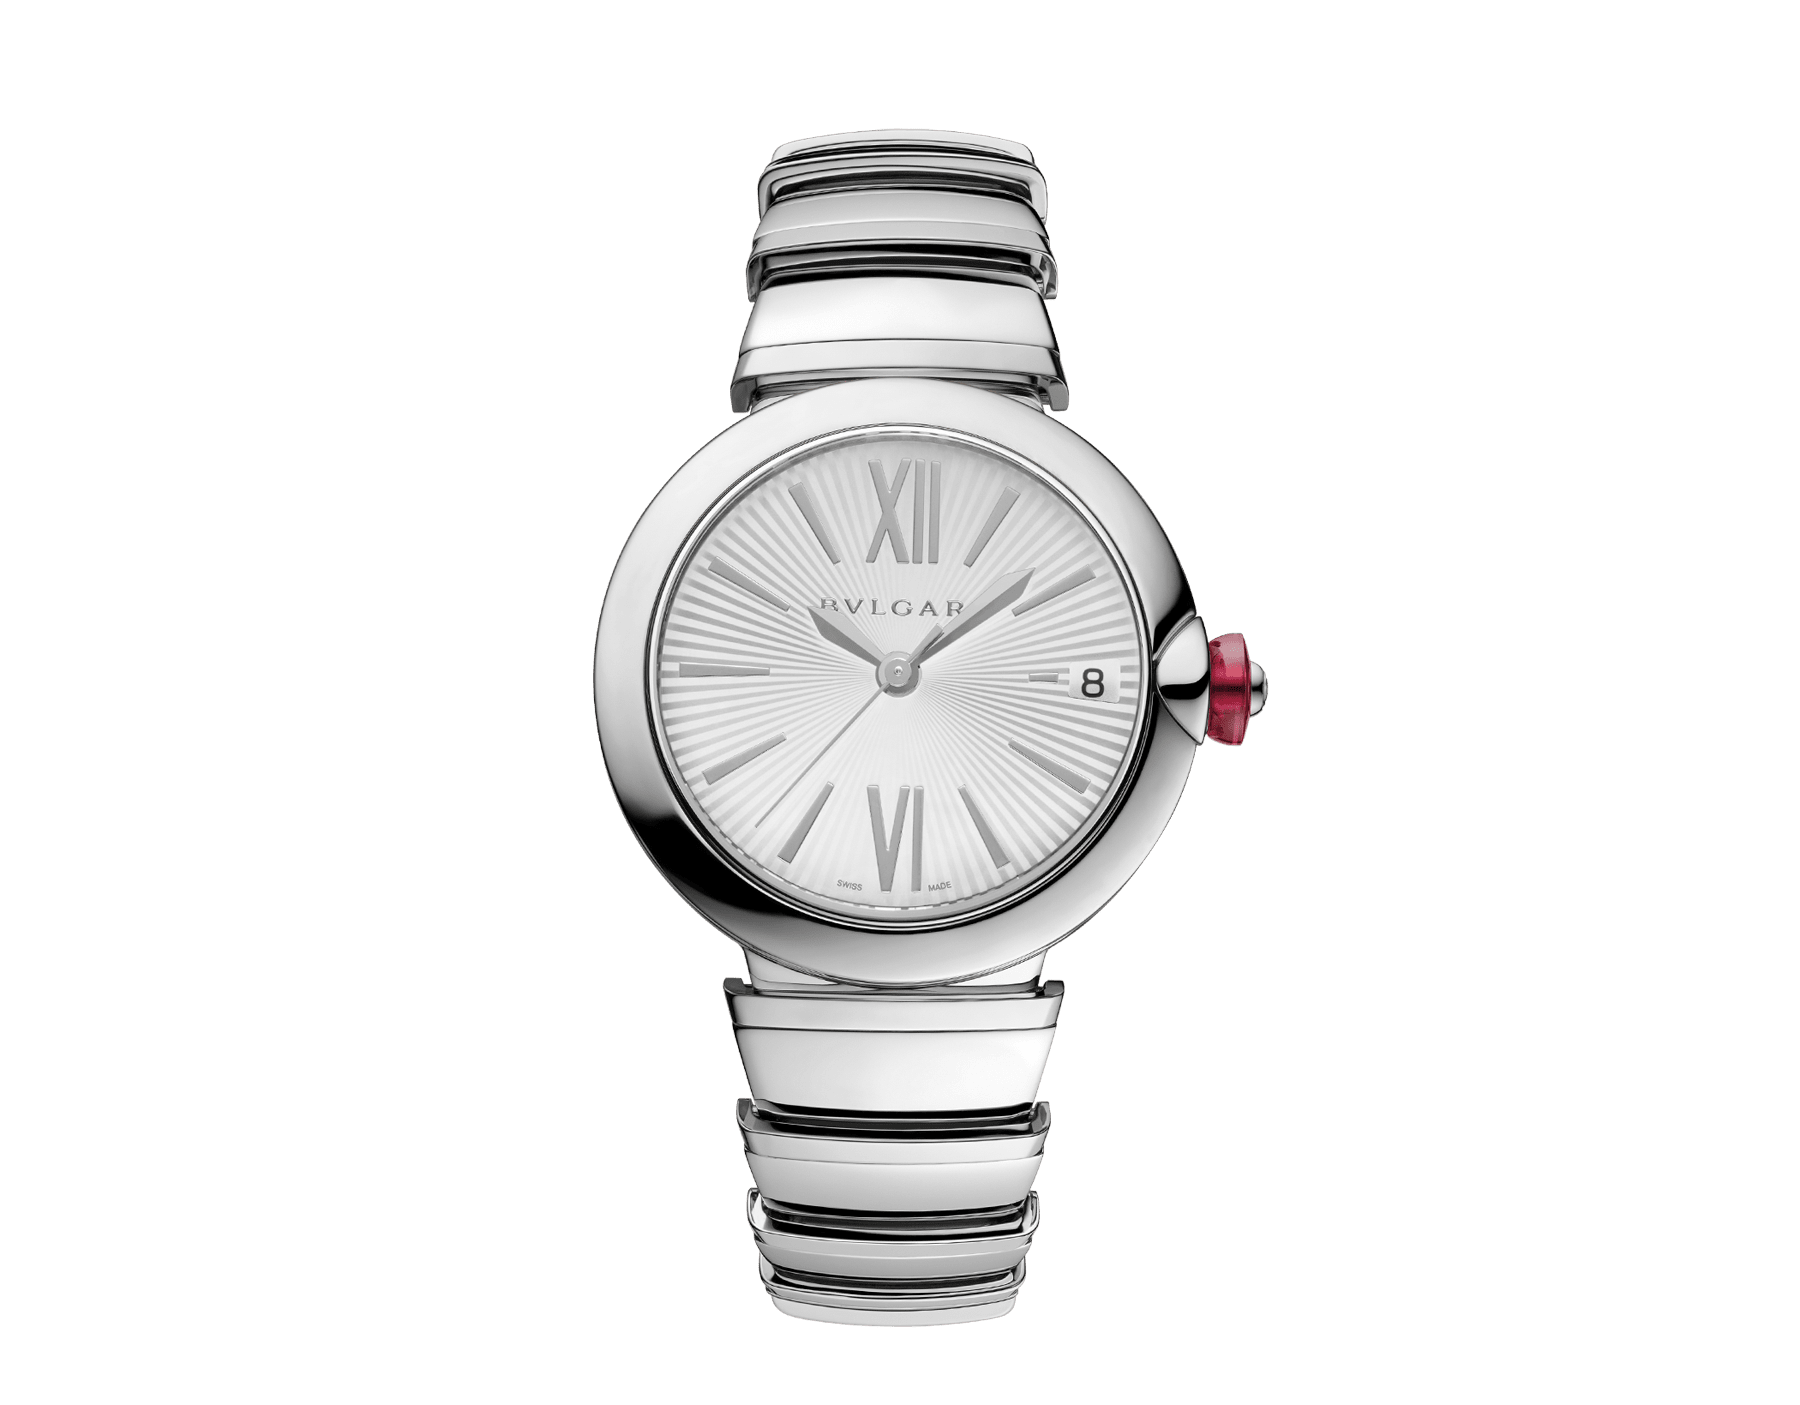 LVCEA watch in stainless steel case and bracelet, with silver opaline dial. 102219 image 1